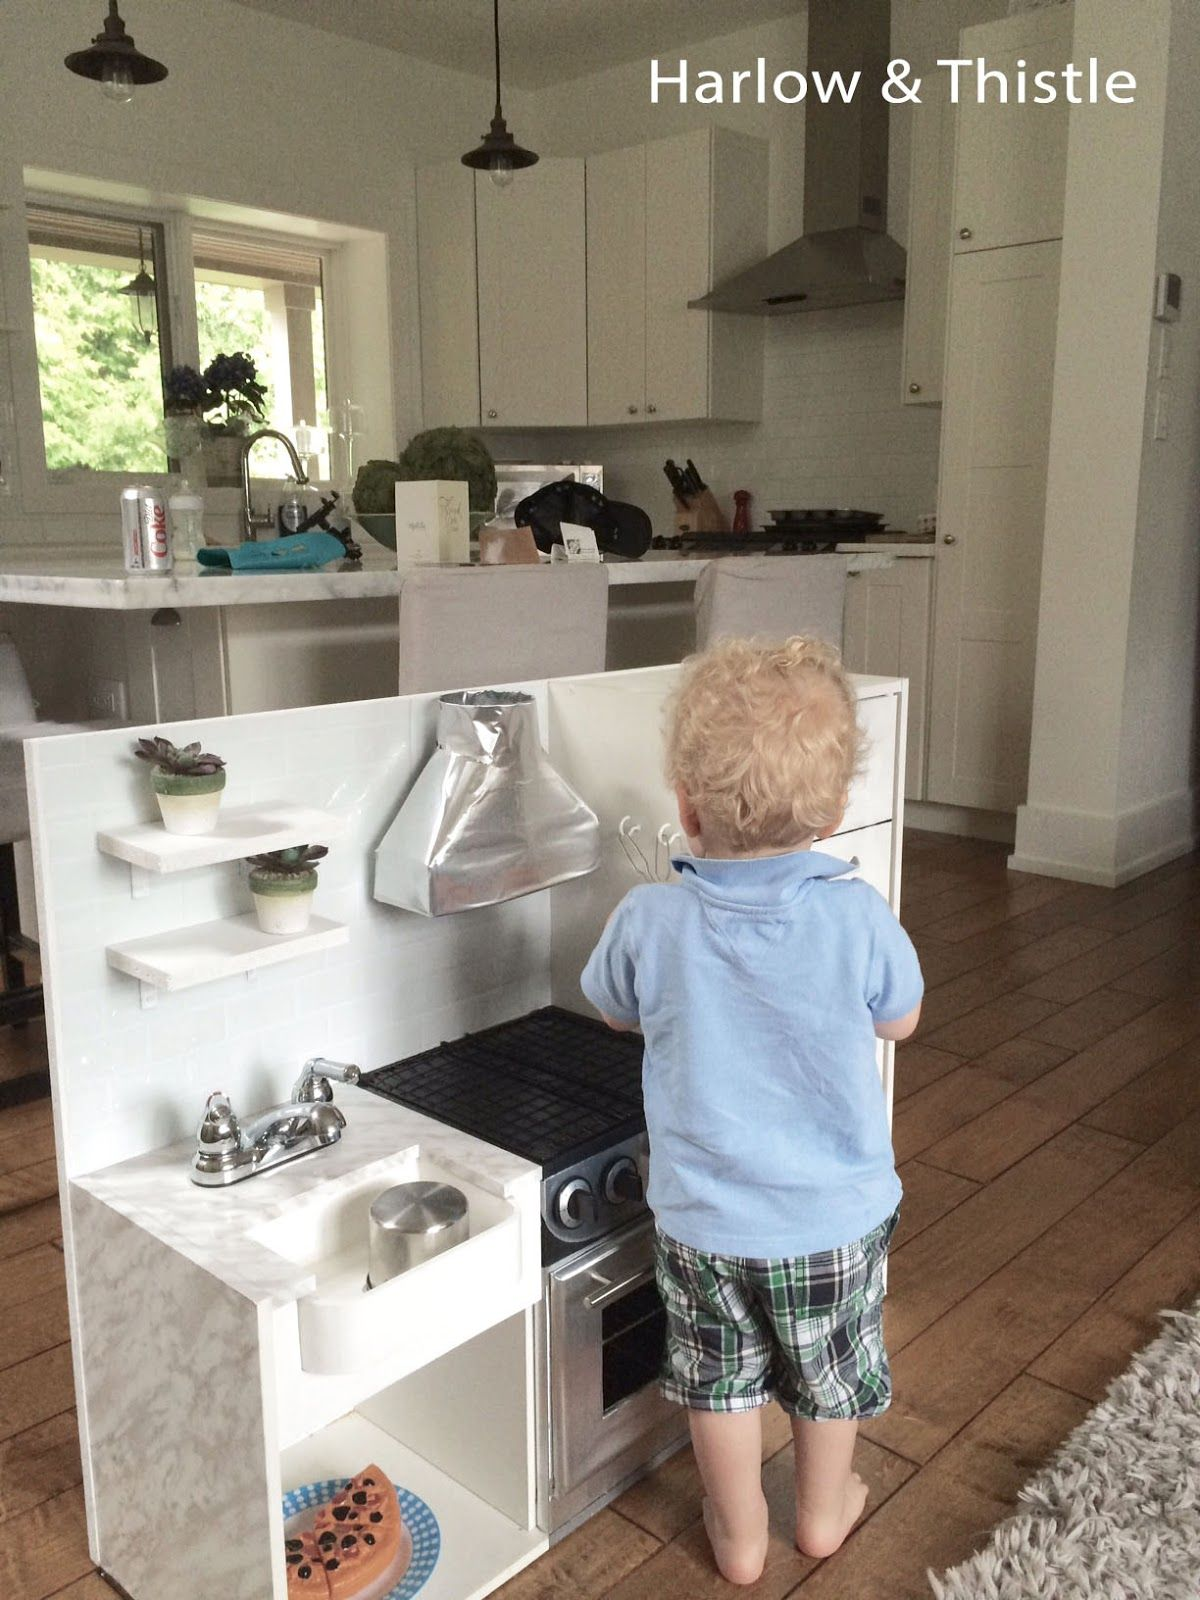 Harlow & Thistle DIY Play Kitchen, toy kitchen with